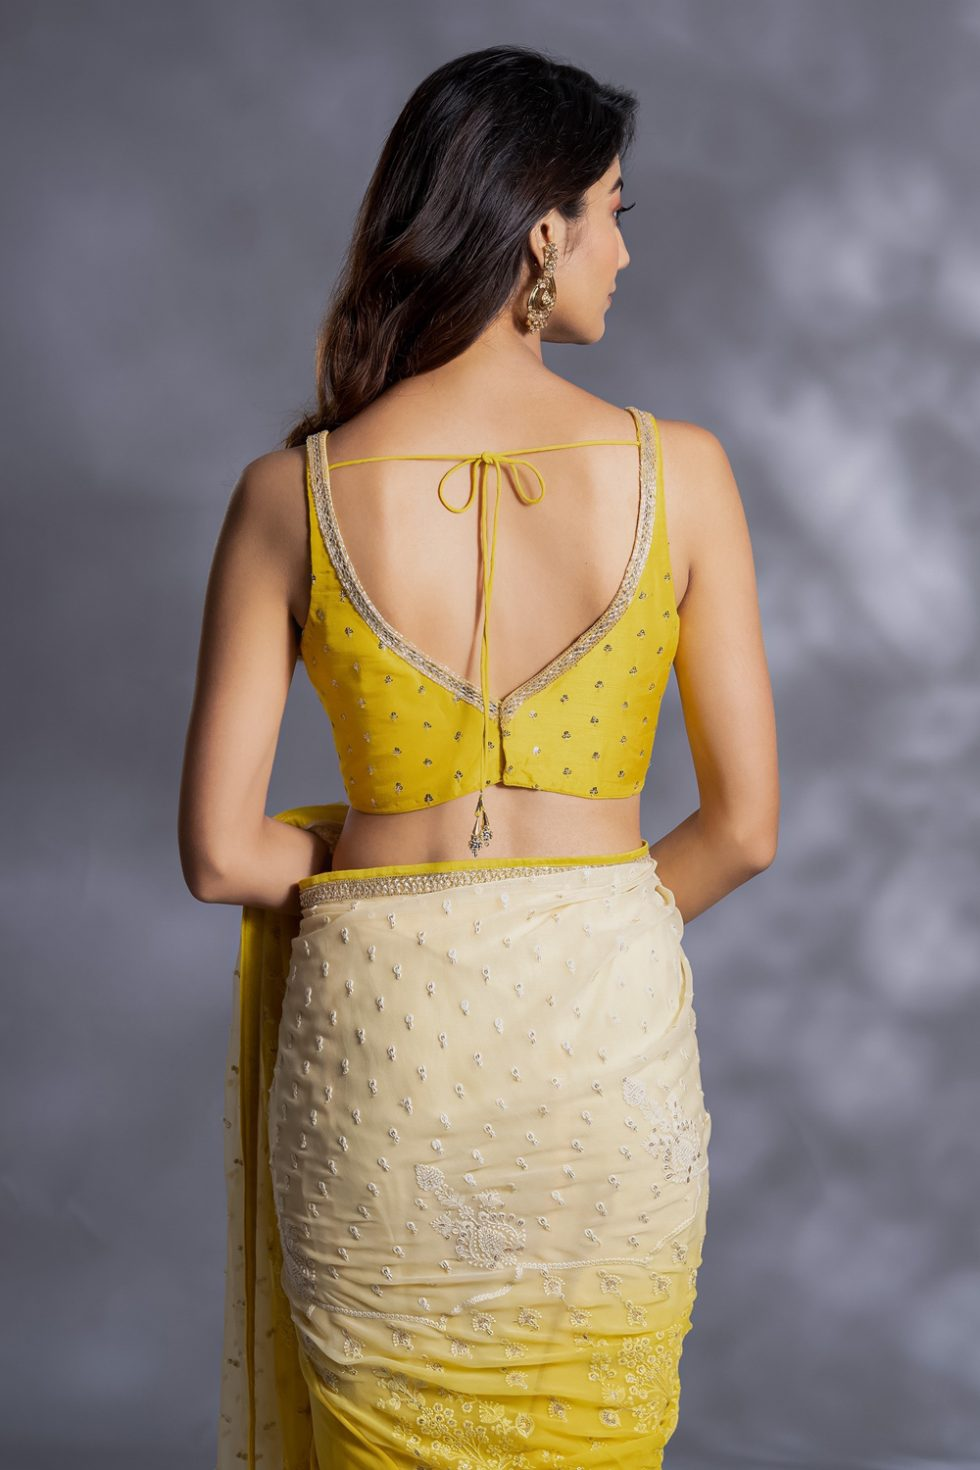 Ivory to bright yellow classic saree with a chikan pallu paired with a matching yellow blouse with gold butis.